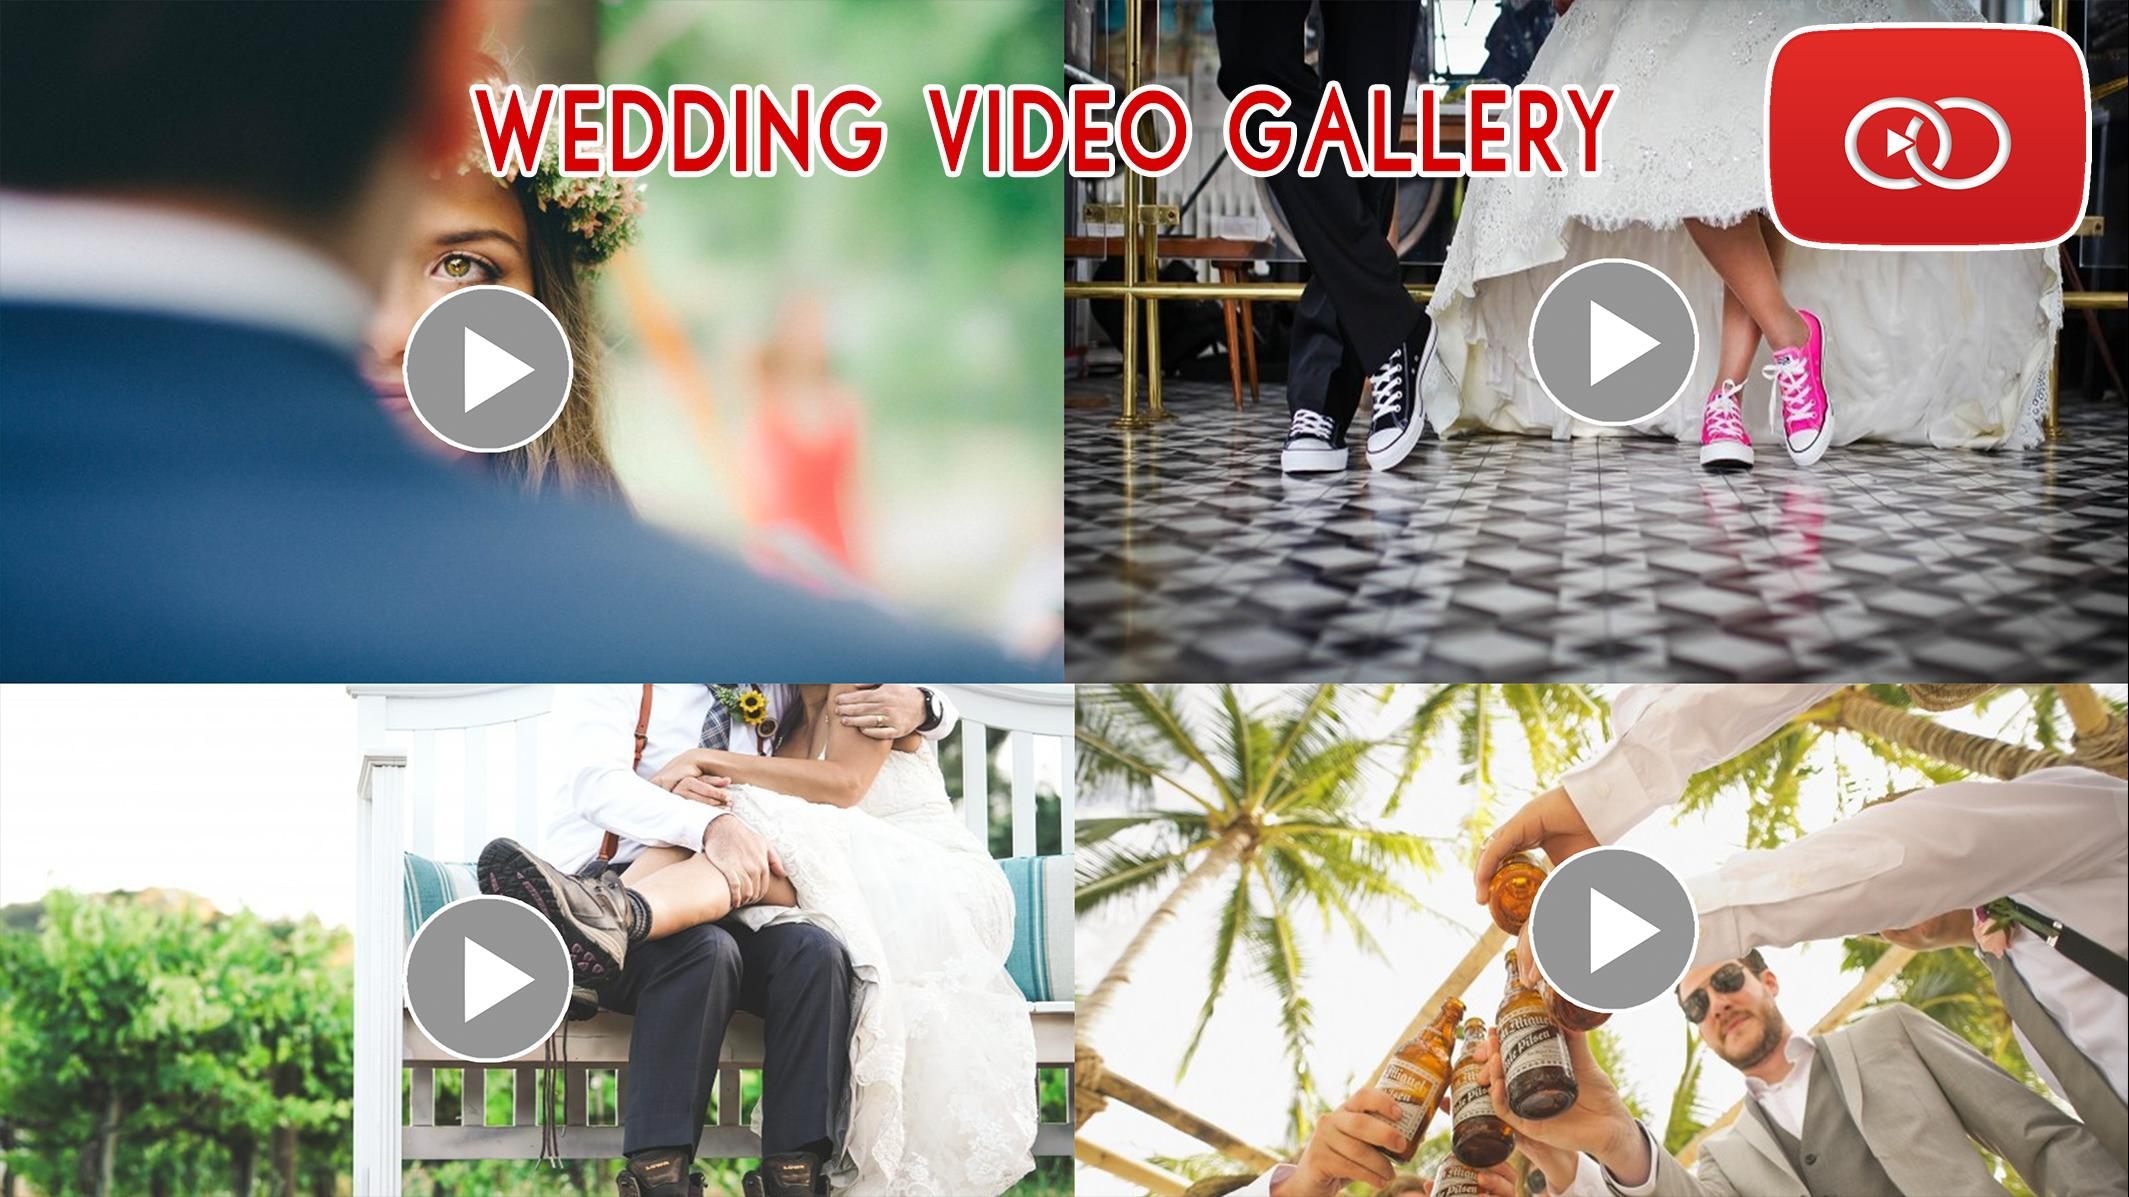 Wedding Video Gallery - Backup Videos in YouTube for Android